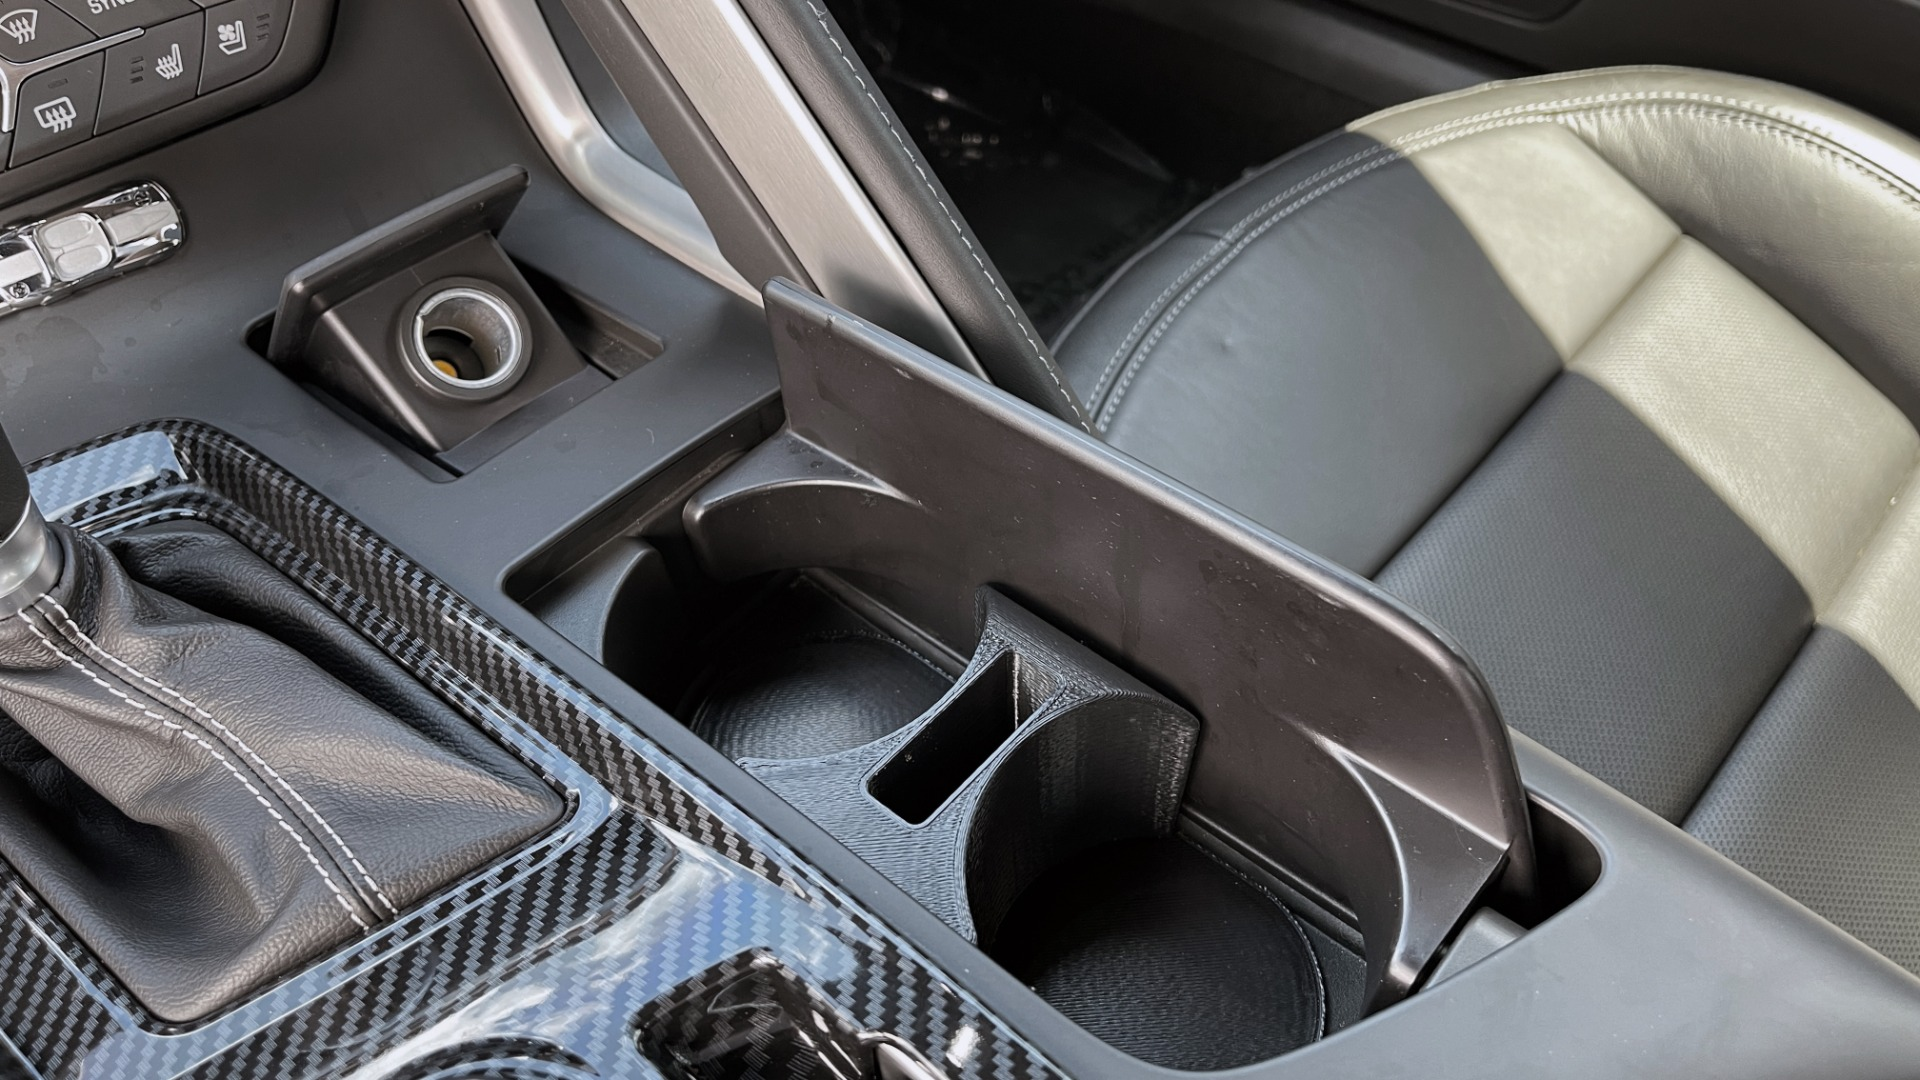 Used 2019 Chevrolet CORVETTE GRAND SPORT 3LT / SUPERCHARGED 6.2L V8 / NAV / REARVIEW for sale Sold at Formula Imports in Charlotte NC 28227 57